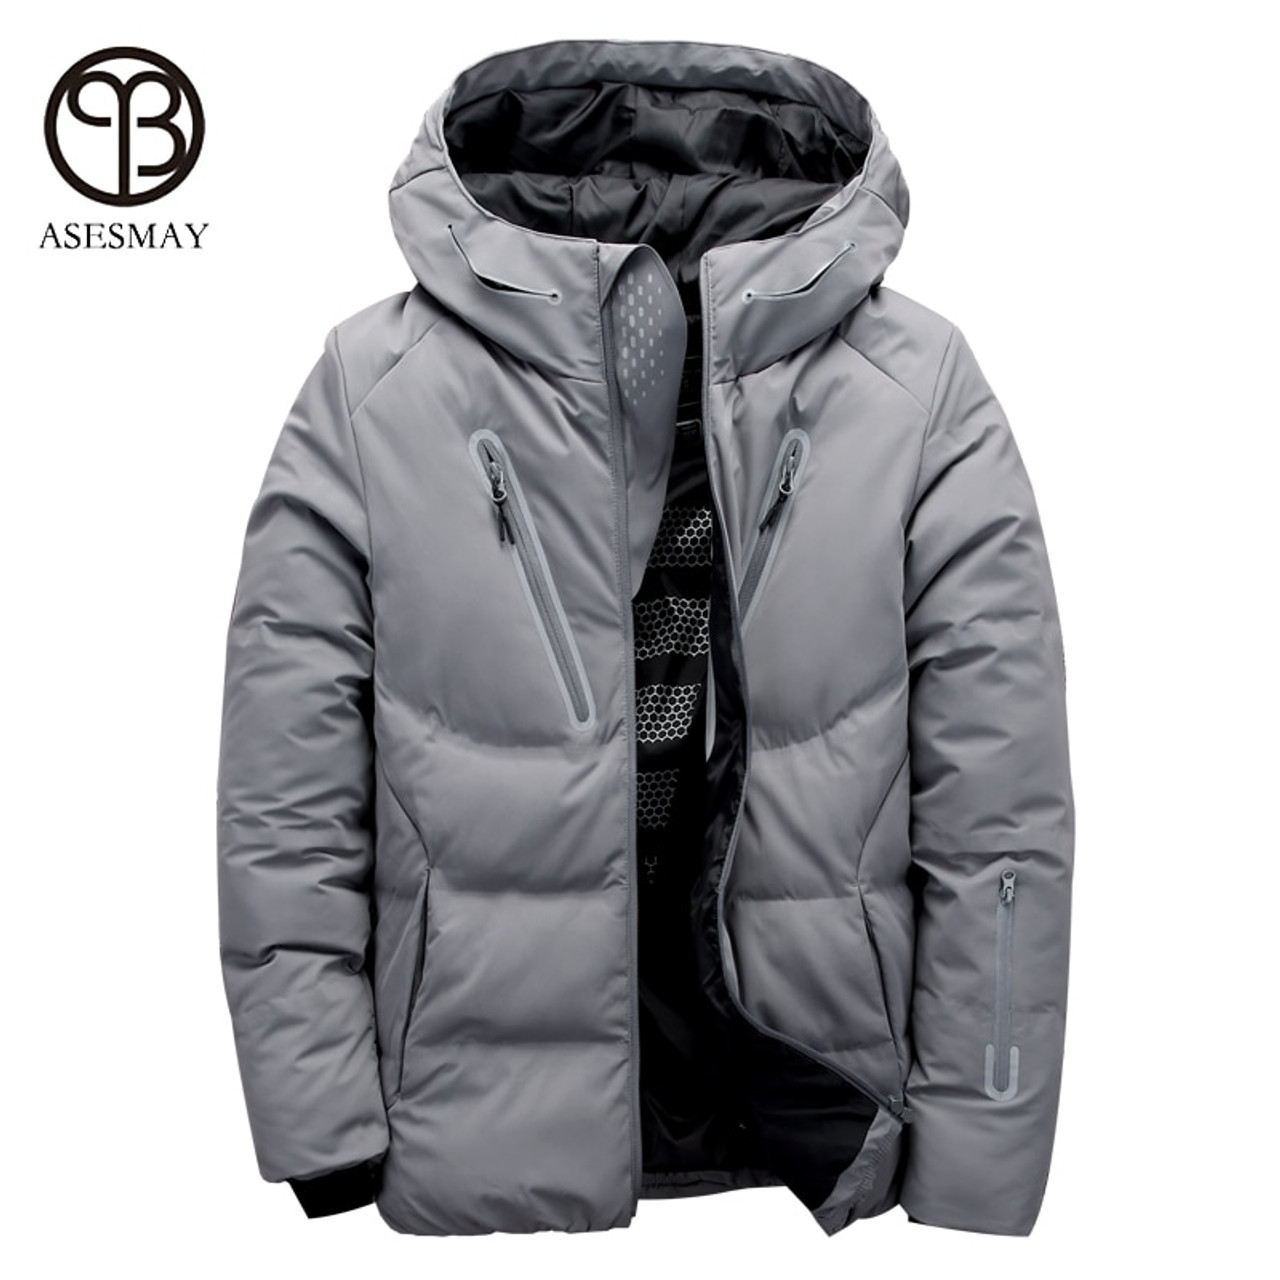 outstanding features hot-selling authentic nice shoes Asesmay luxury men winter jacket white duck down parka casual goose feather  men's winter coat hood thick warm waterproof jackets